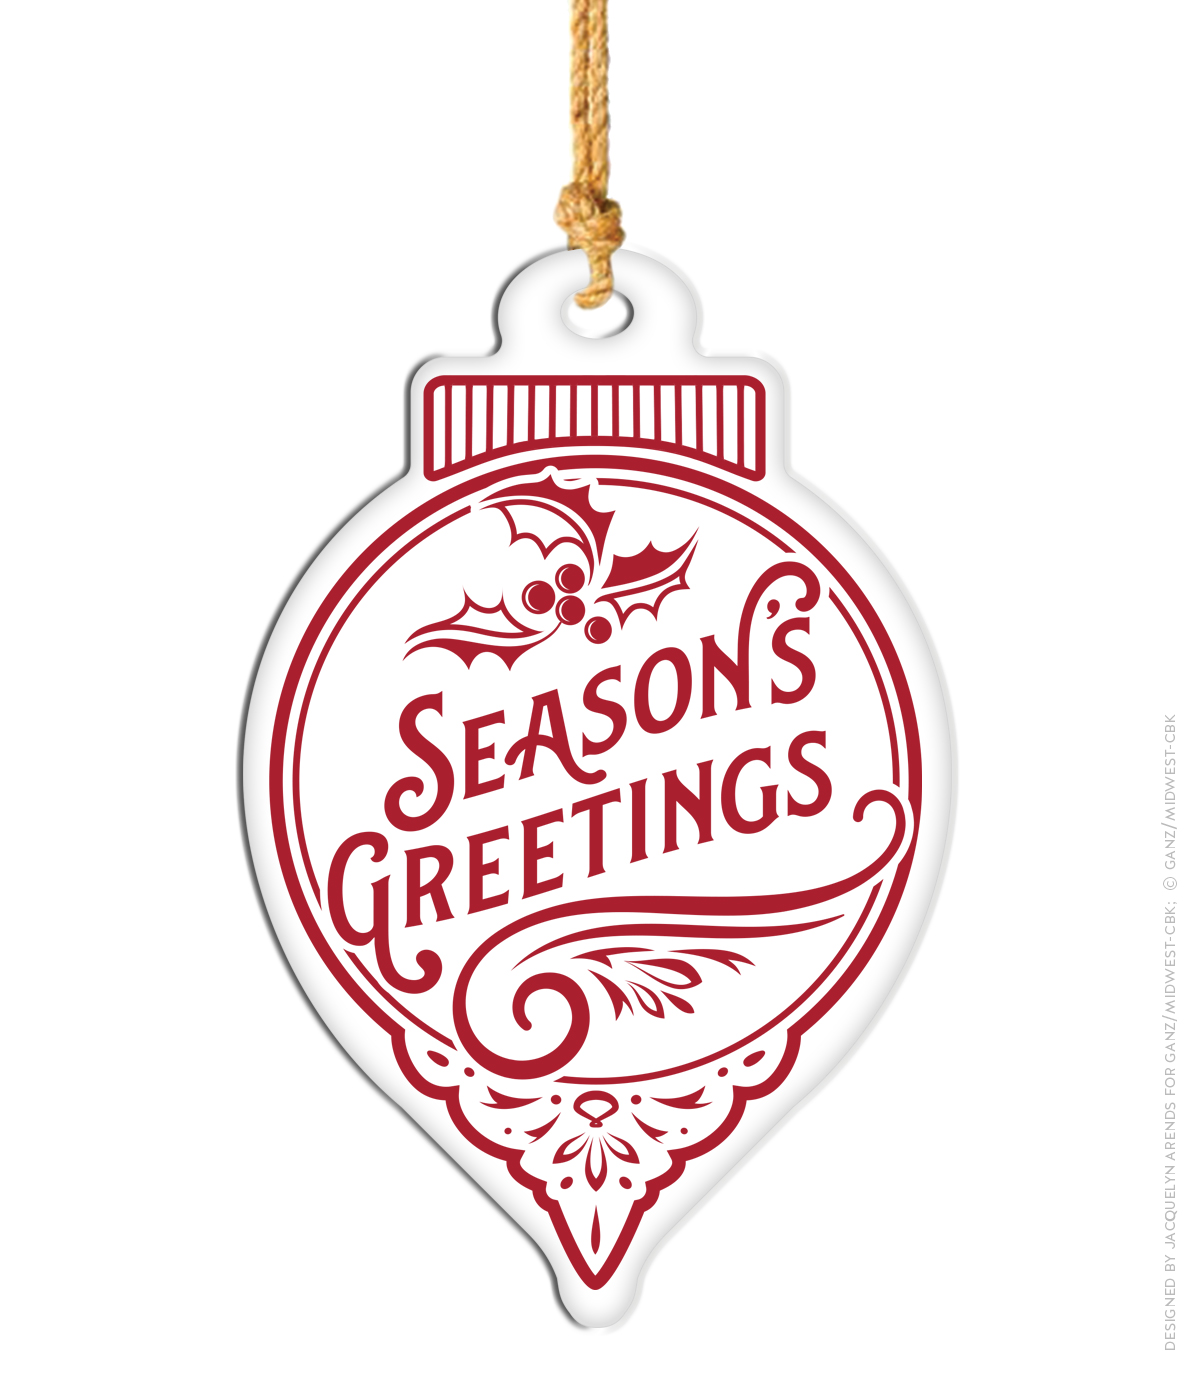 Large Enamel Hanging Ornament, Season's Greetings; © Ganz/Midwest-CBK 2019